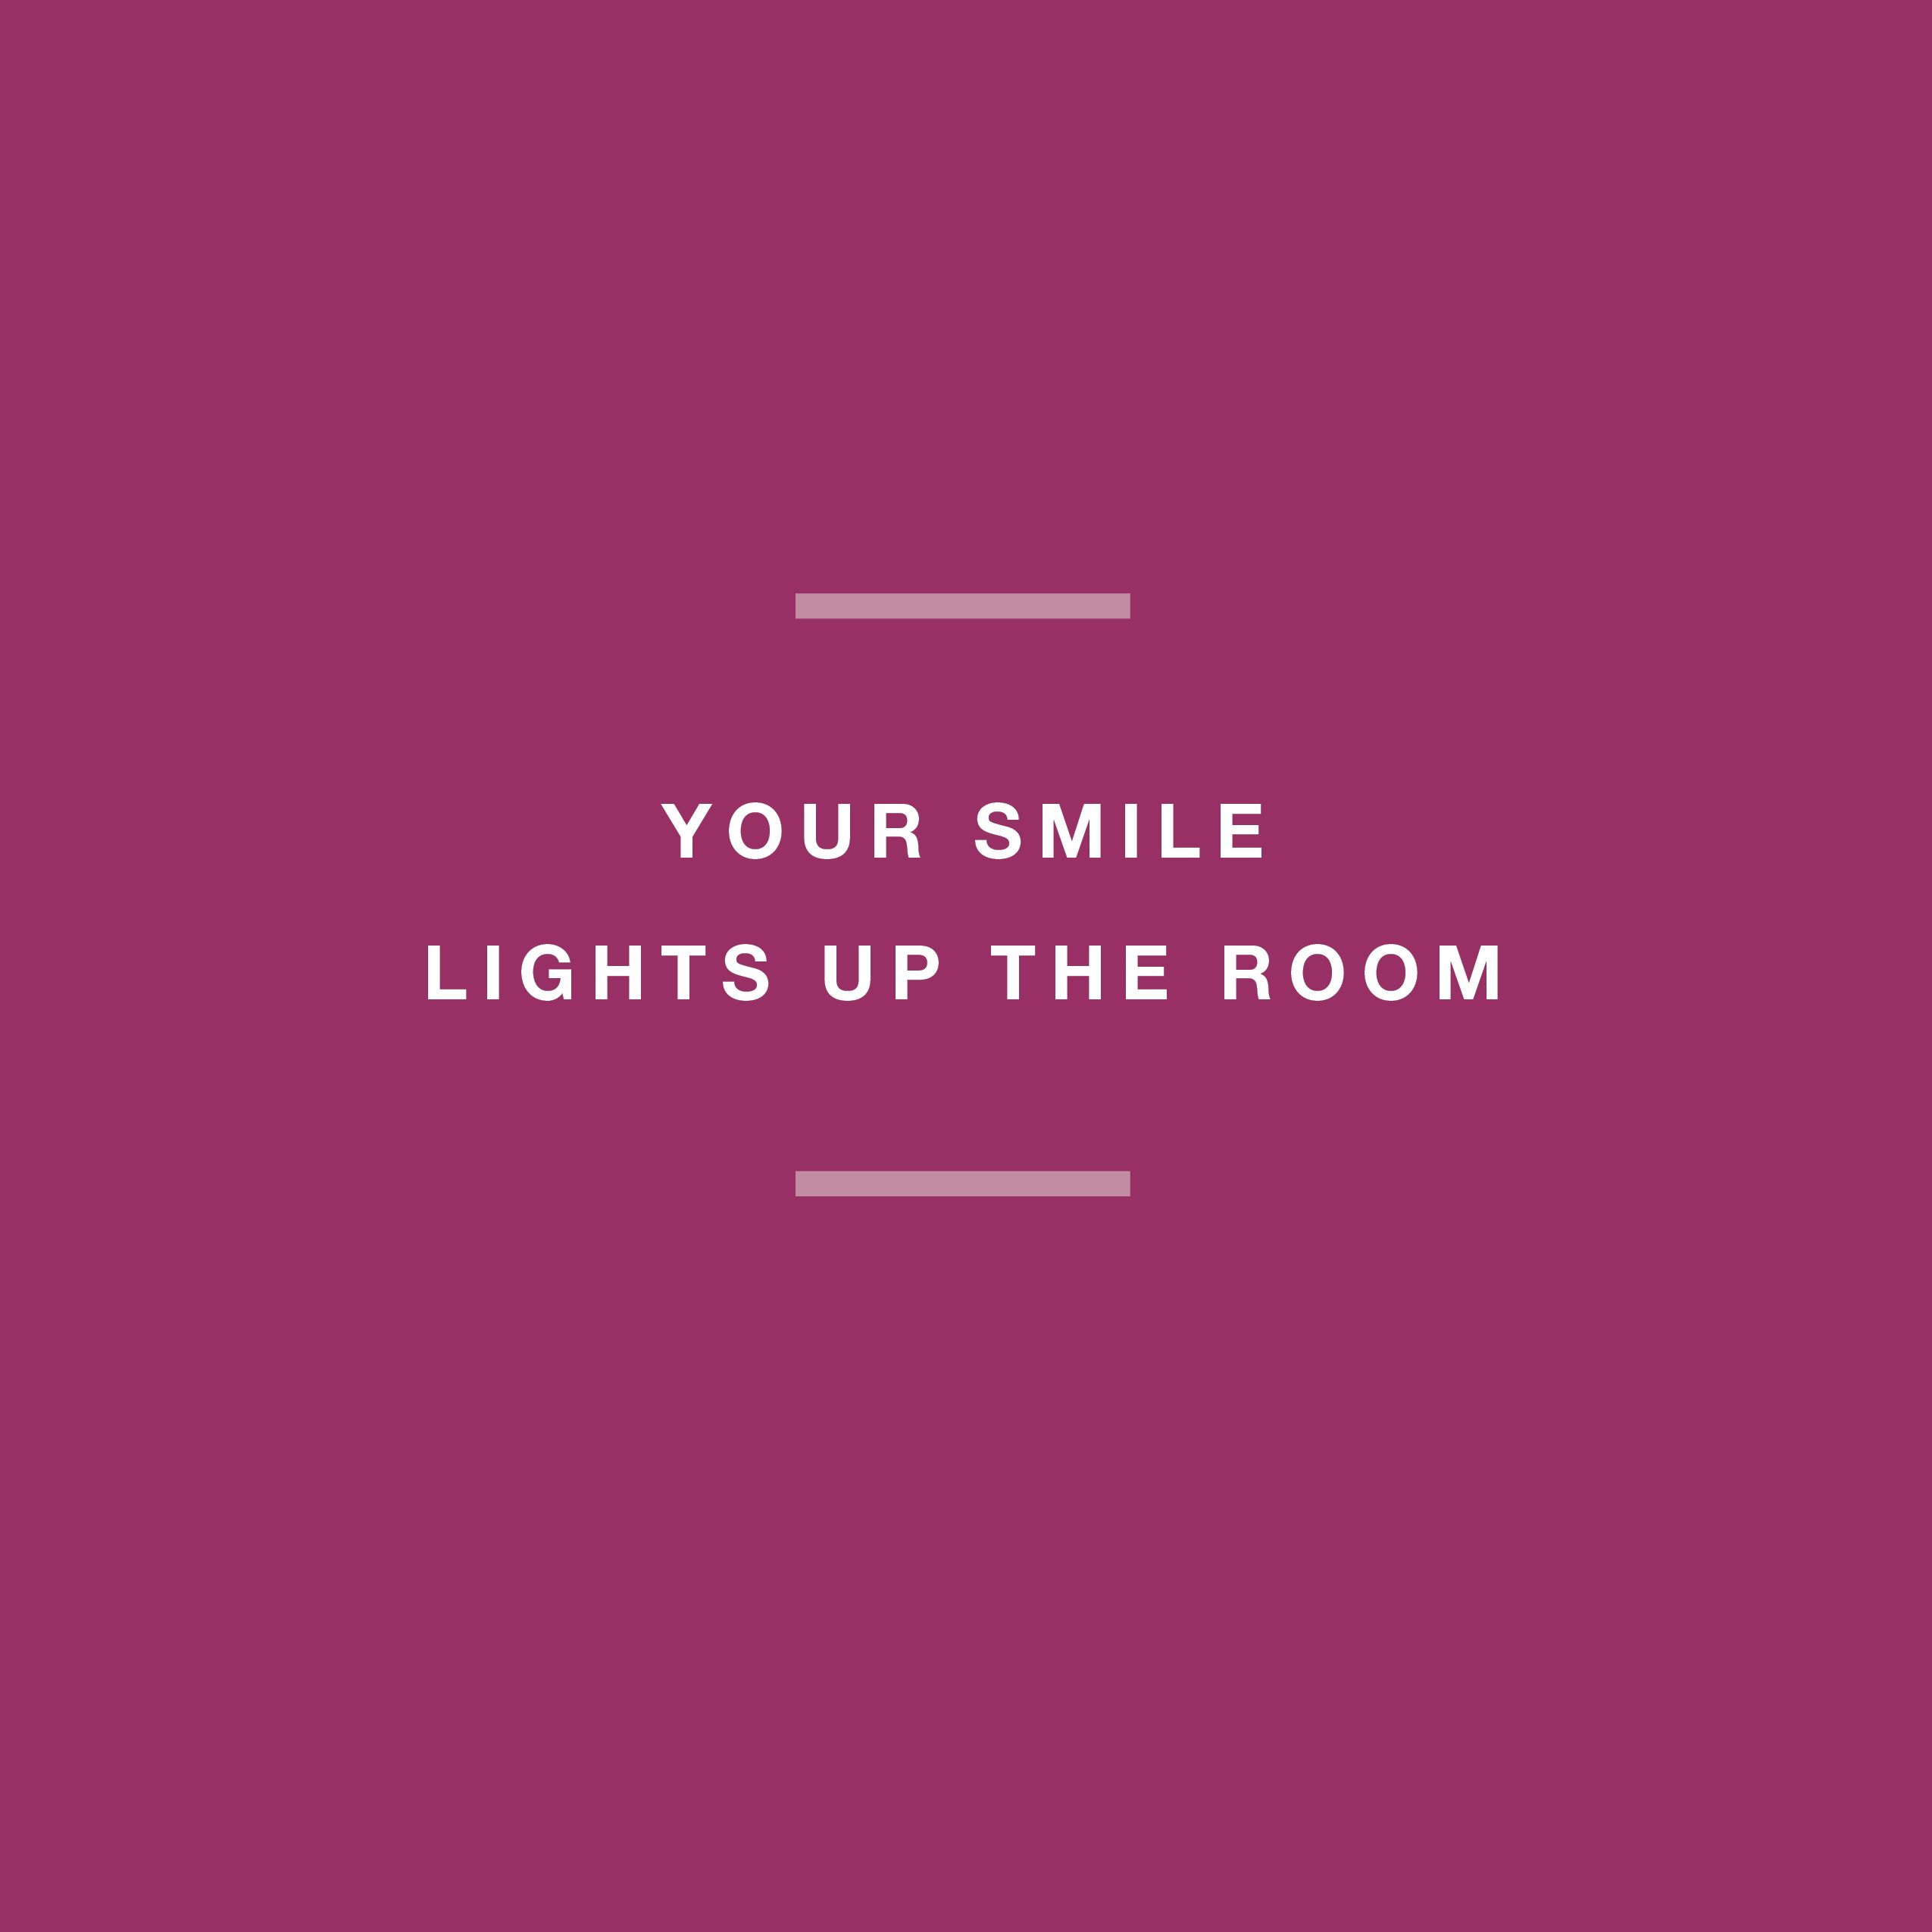 in case you forgot to remind yourself this morning your smile